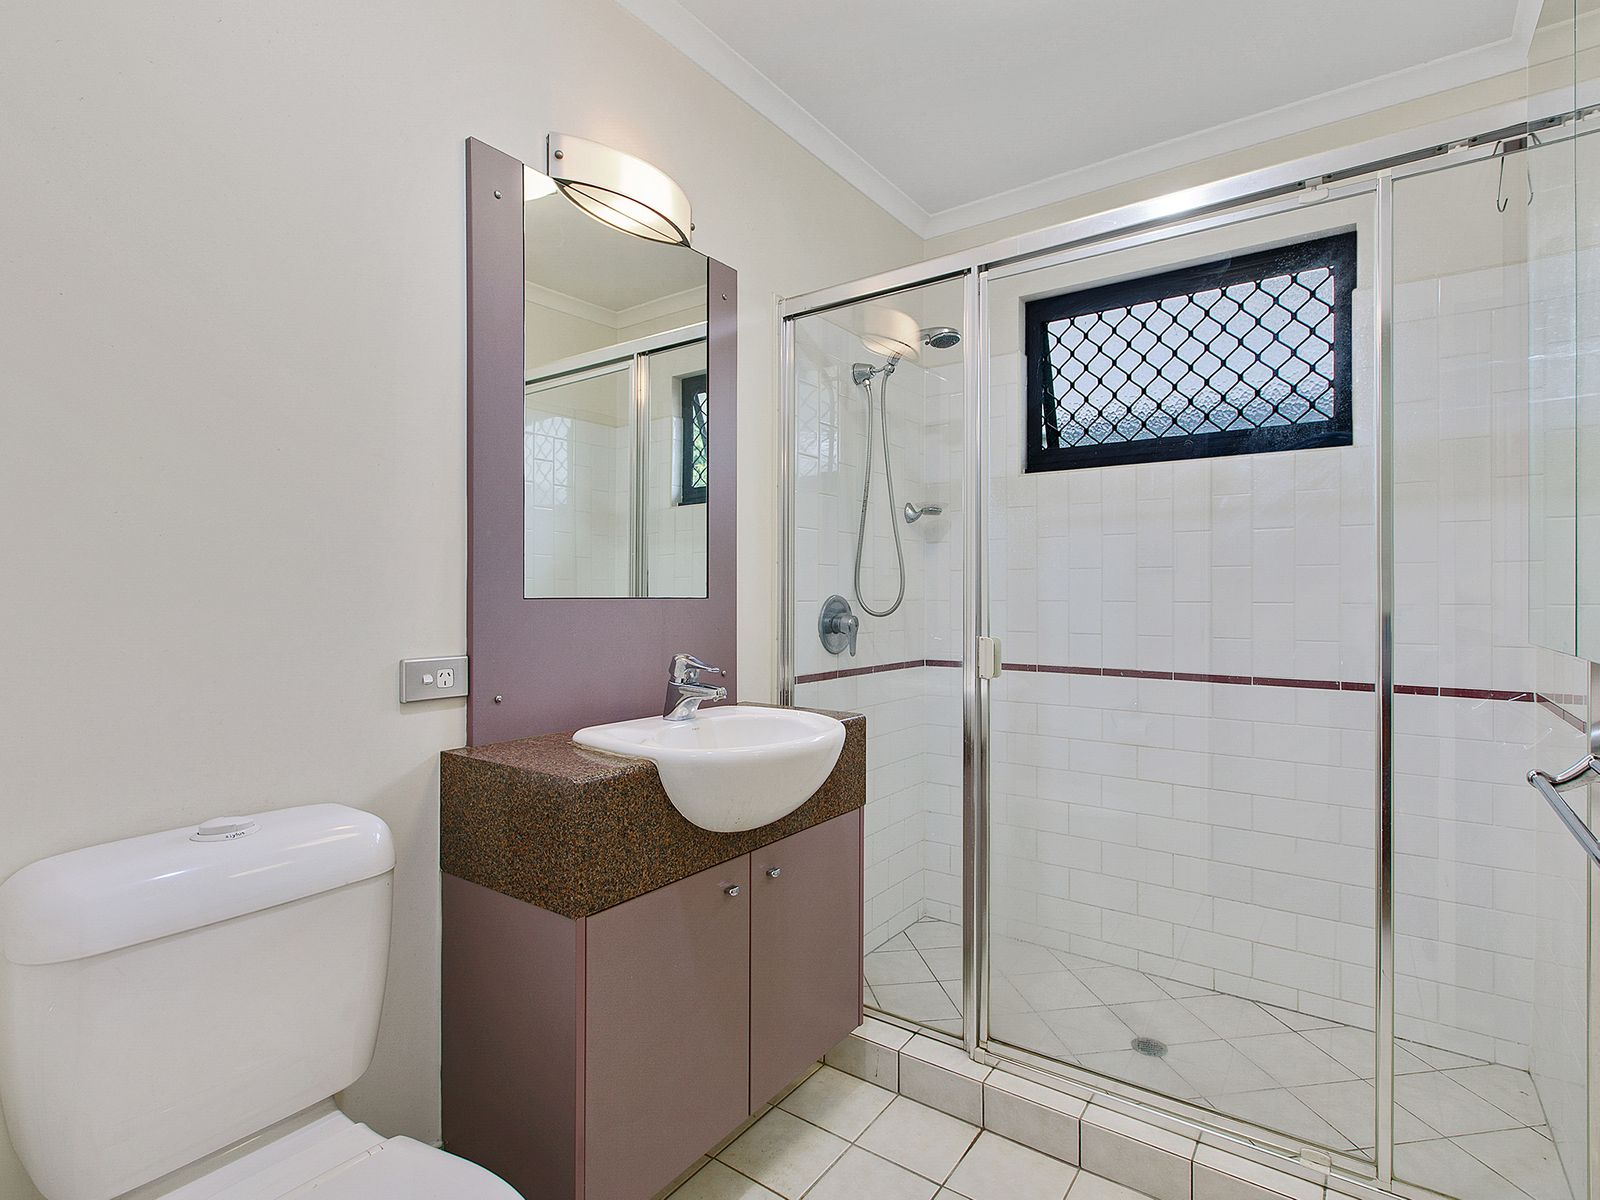 2/1 Lakehead Drive, Sippy Downs, QLD 4556